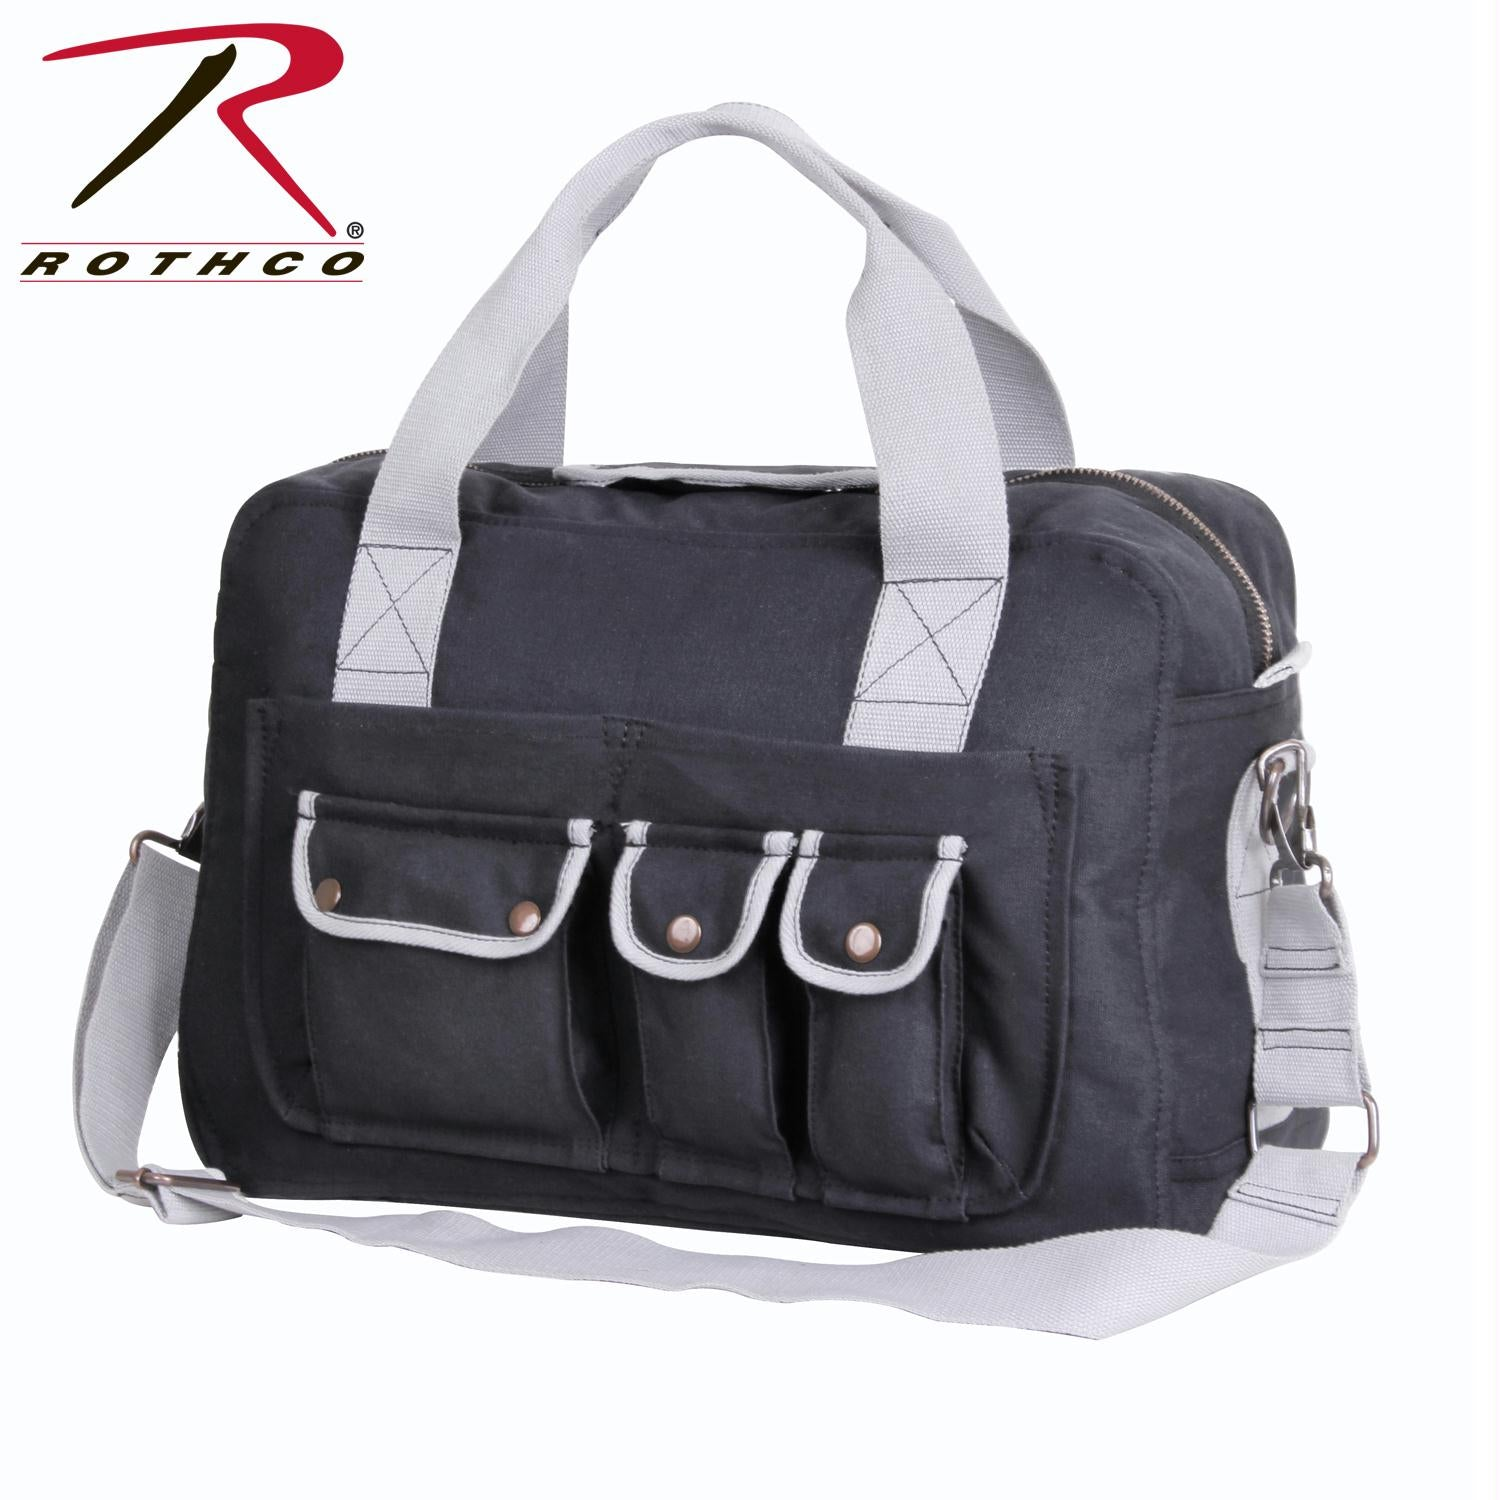 Rothco Two Tone Specialist Carry All Shoulder Bag - Grey